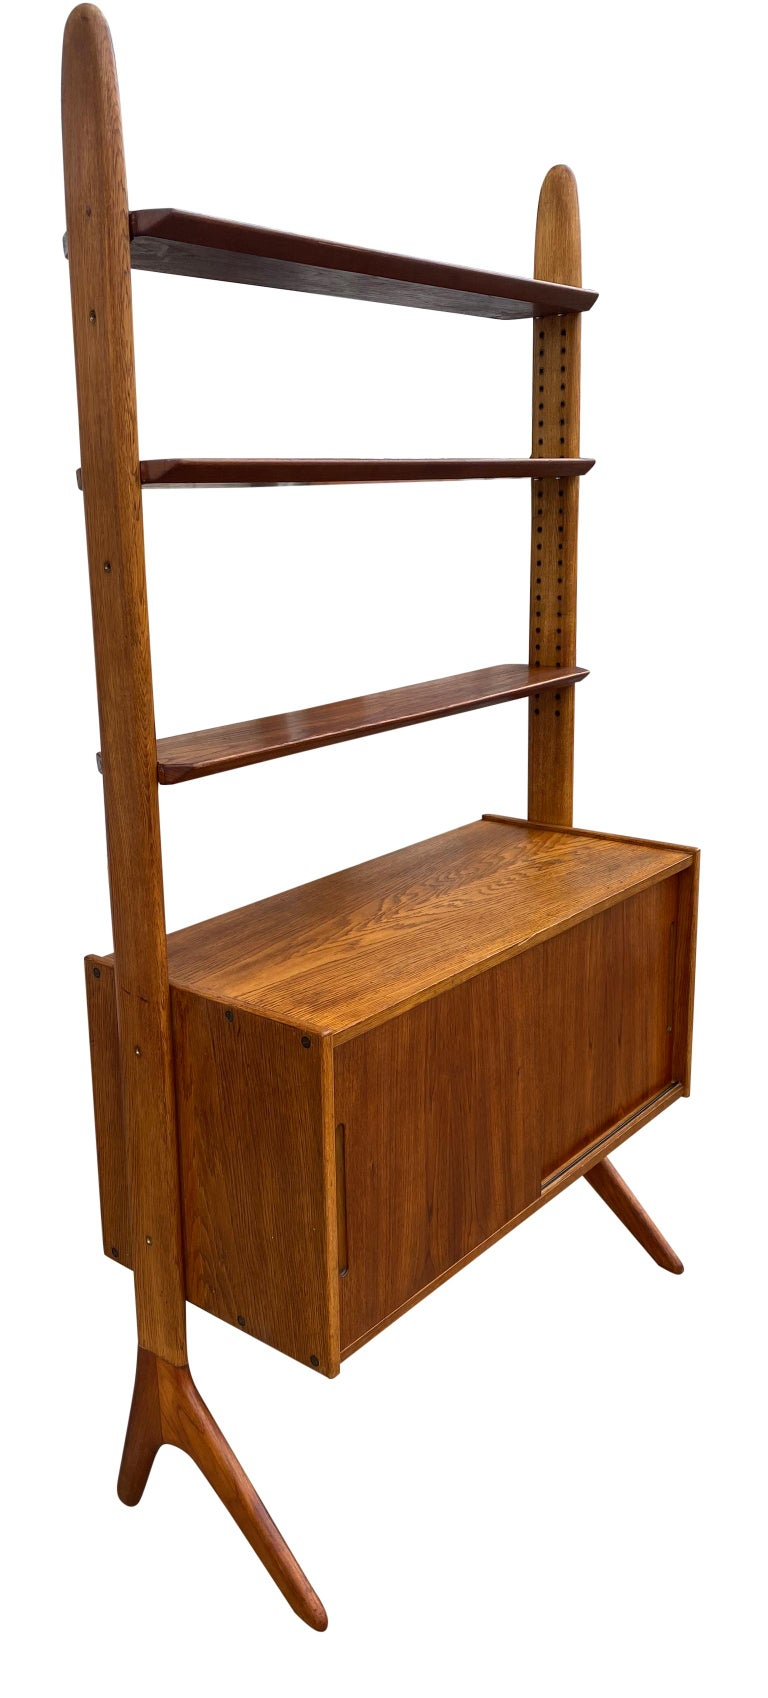 Midcentury Danish Modern Freestanding Teak Wall unit Jutex by Hovmand Olsenc In Good Condition For Sale In BROOKLYN, NY